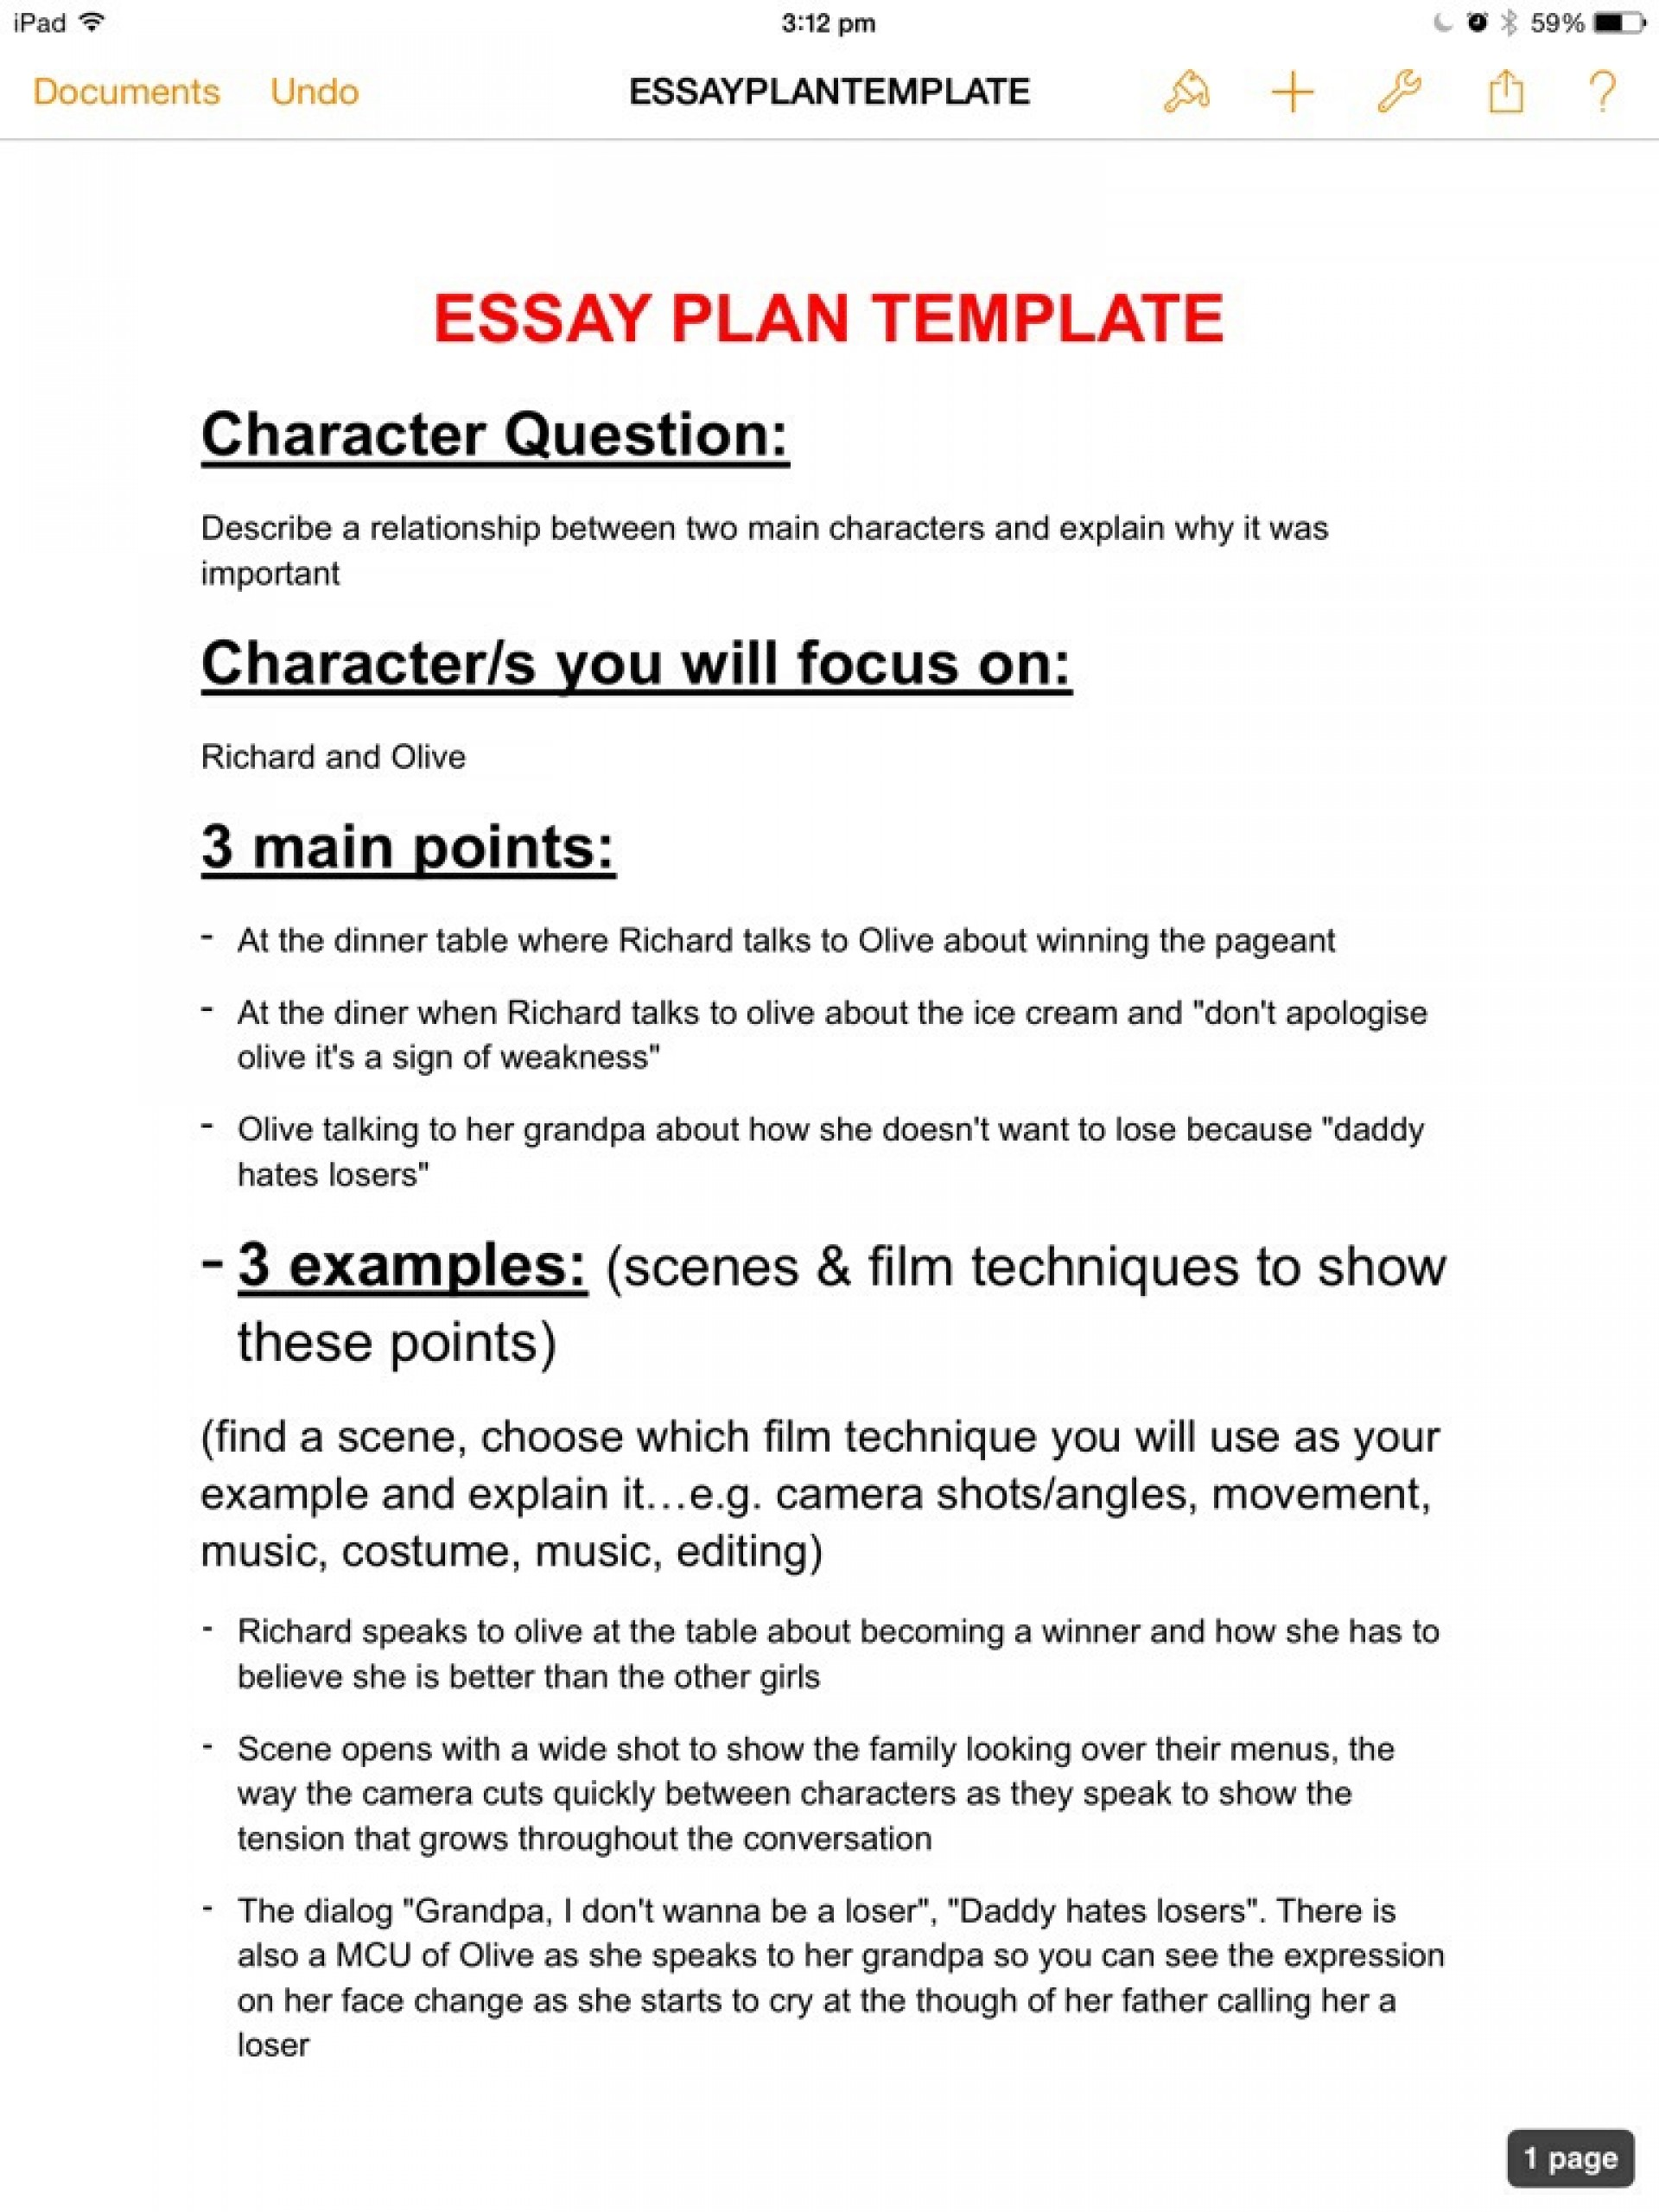 007 Essay Example Plan Stirring Template Word Planning Sheet Critical 1920